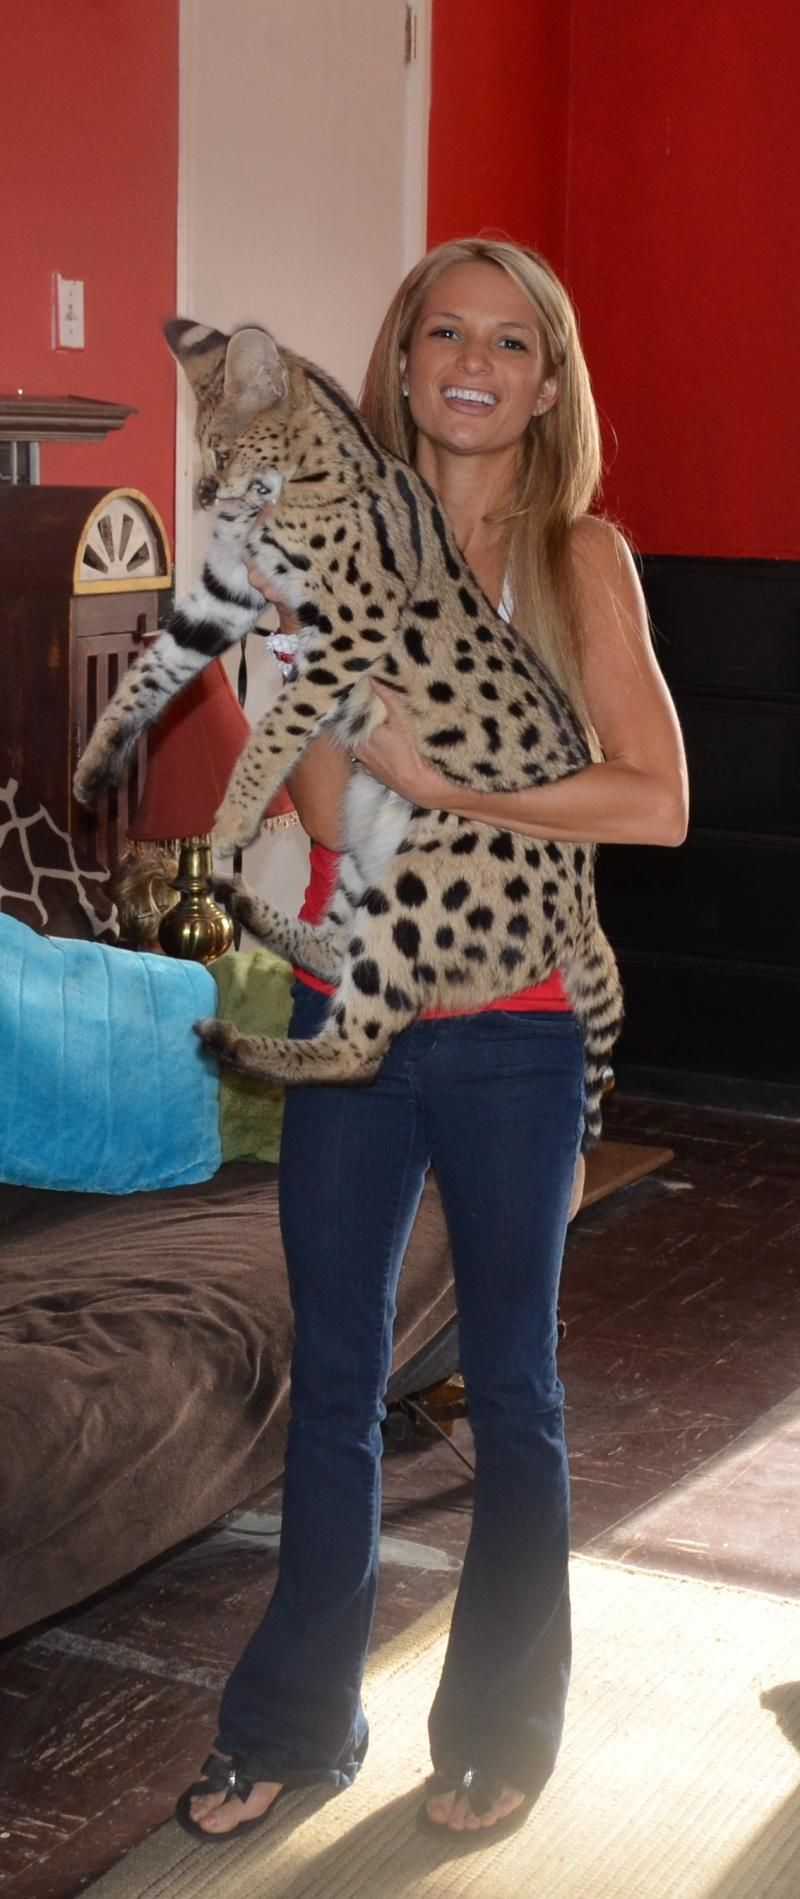 Savannah Cat So Big For A Domestic Cat Like Have A Leopard In Your Arm Savannah Cat Savannah Chat Domestic Cat